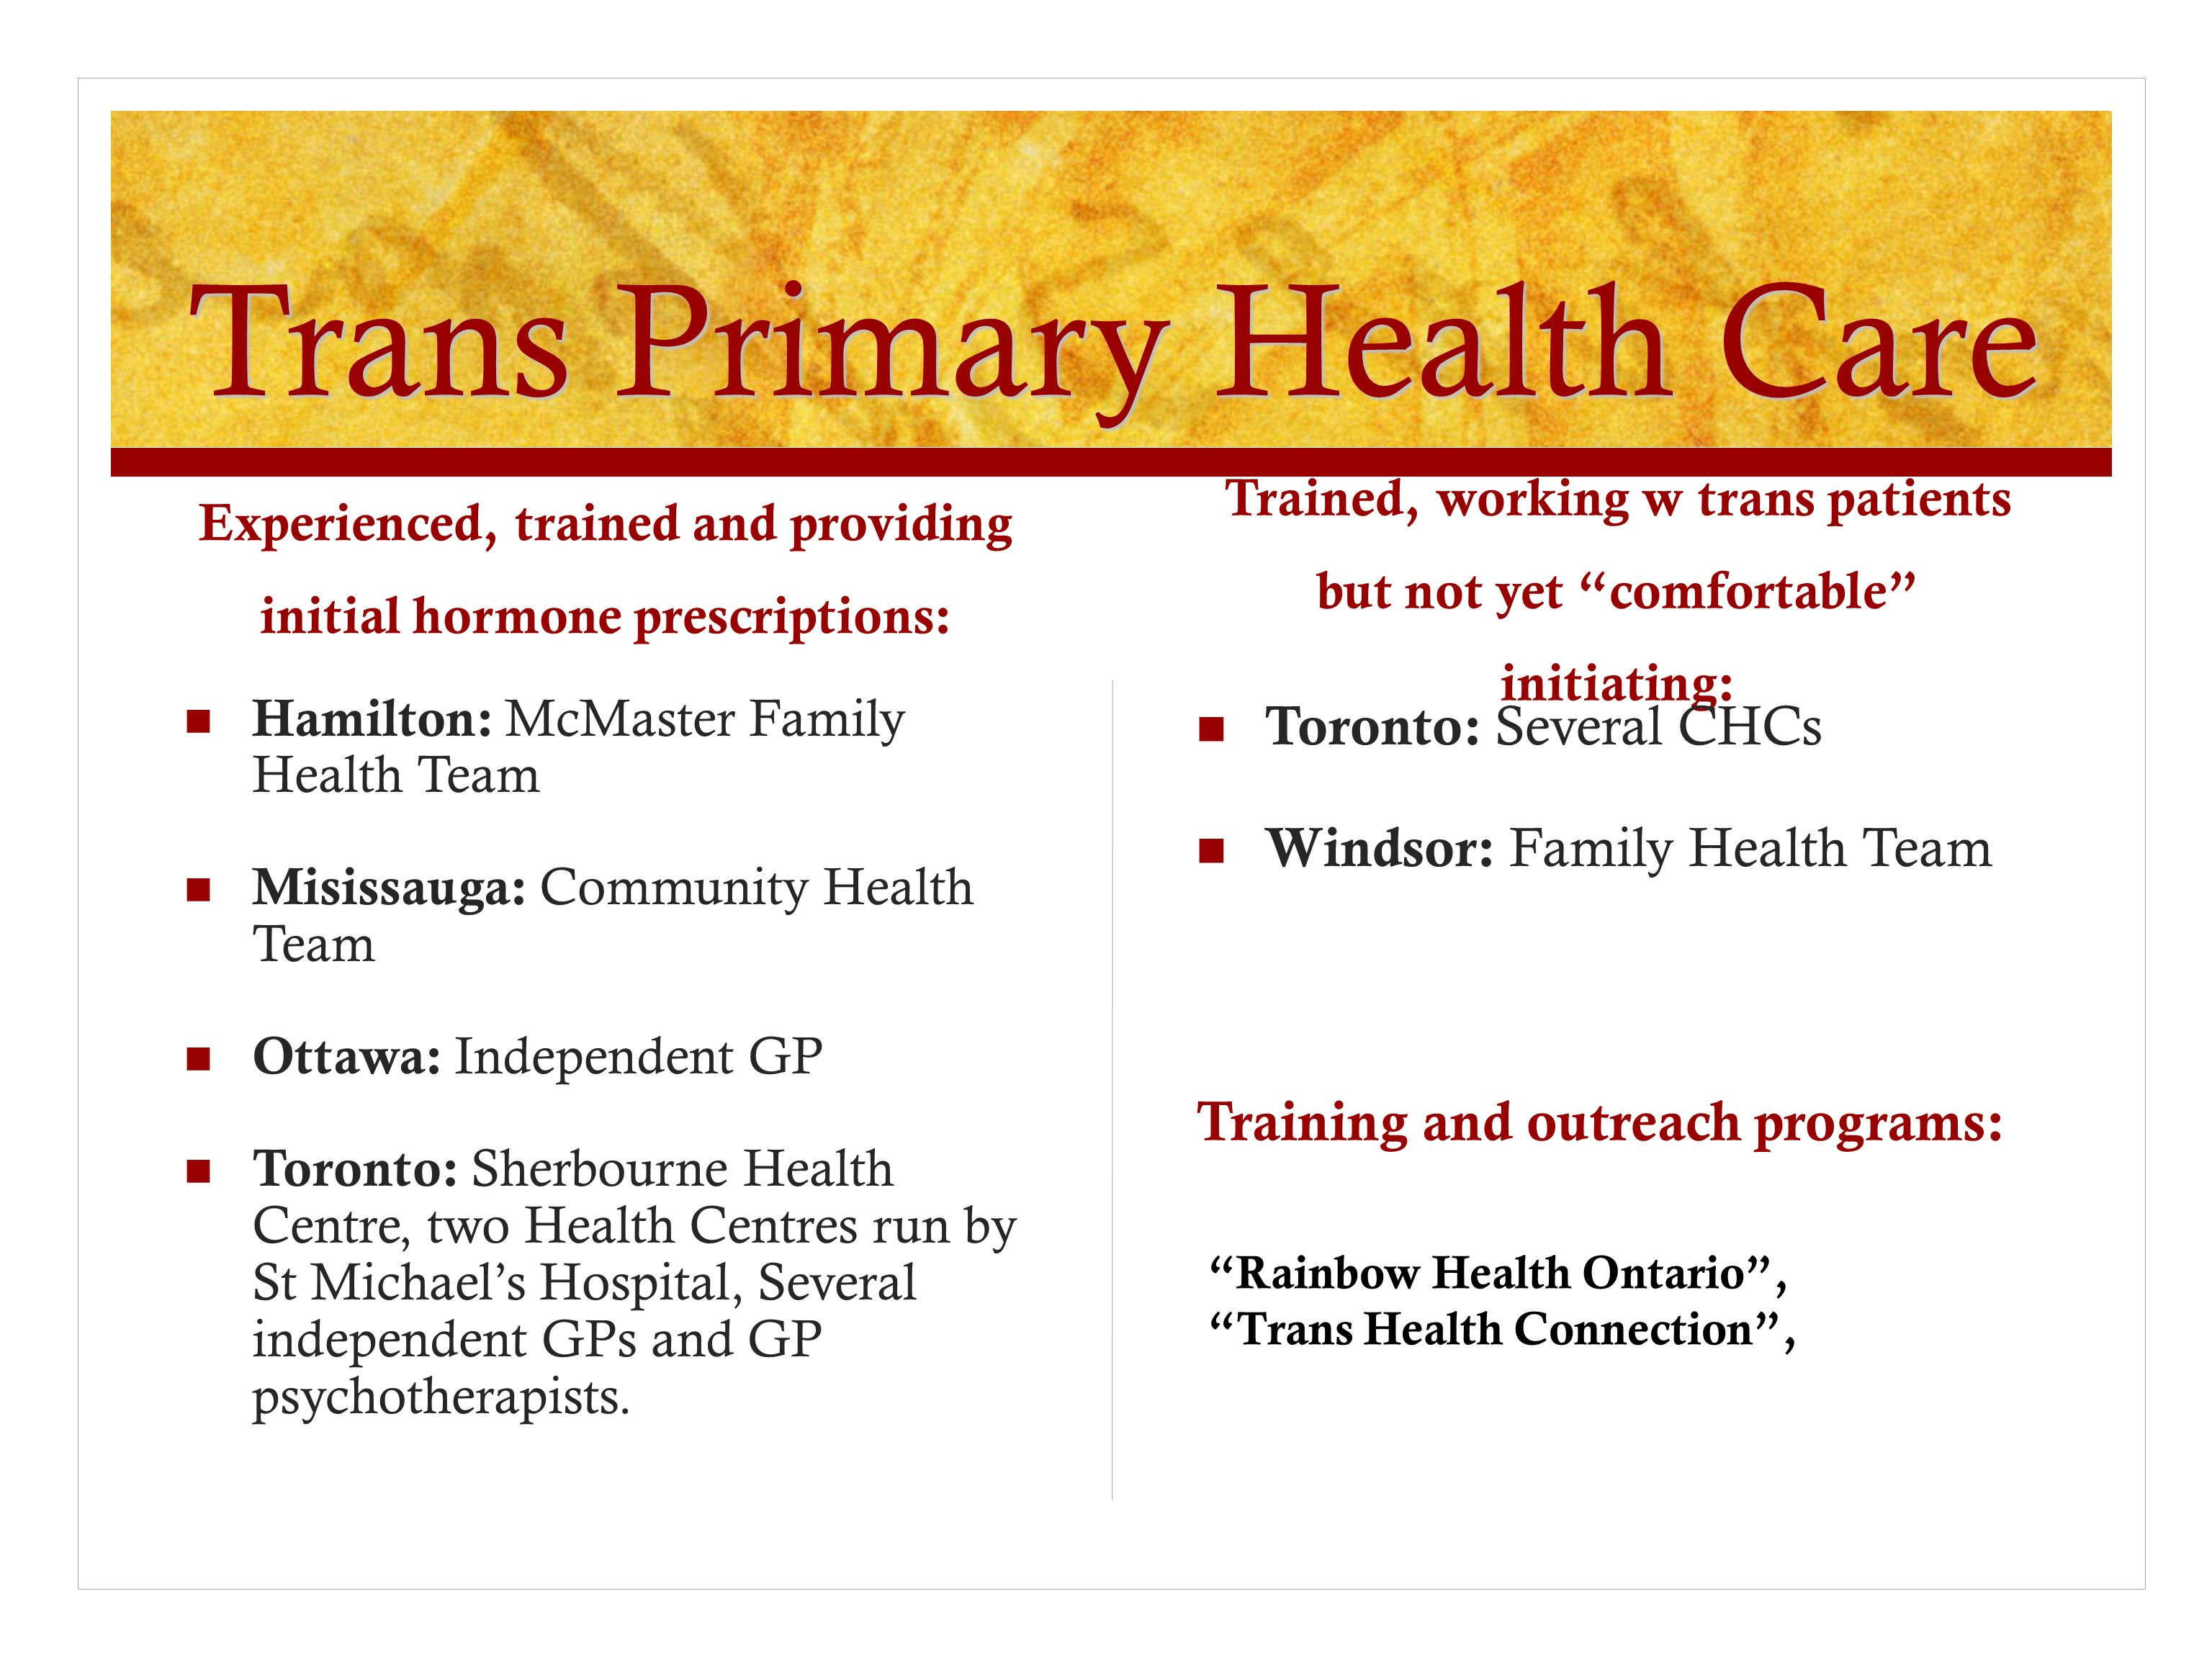 Trans Primary Health Care